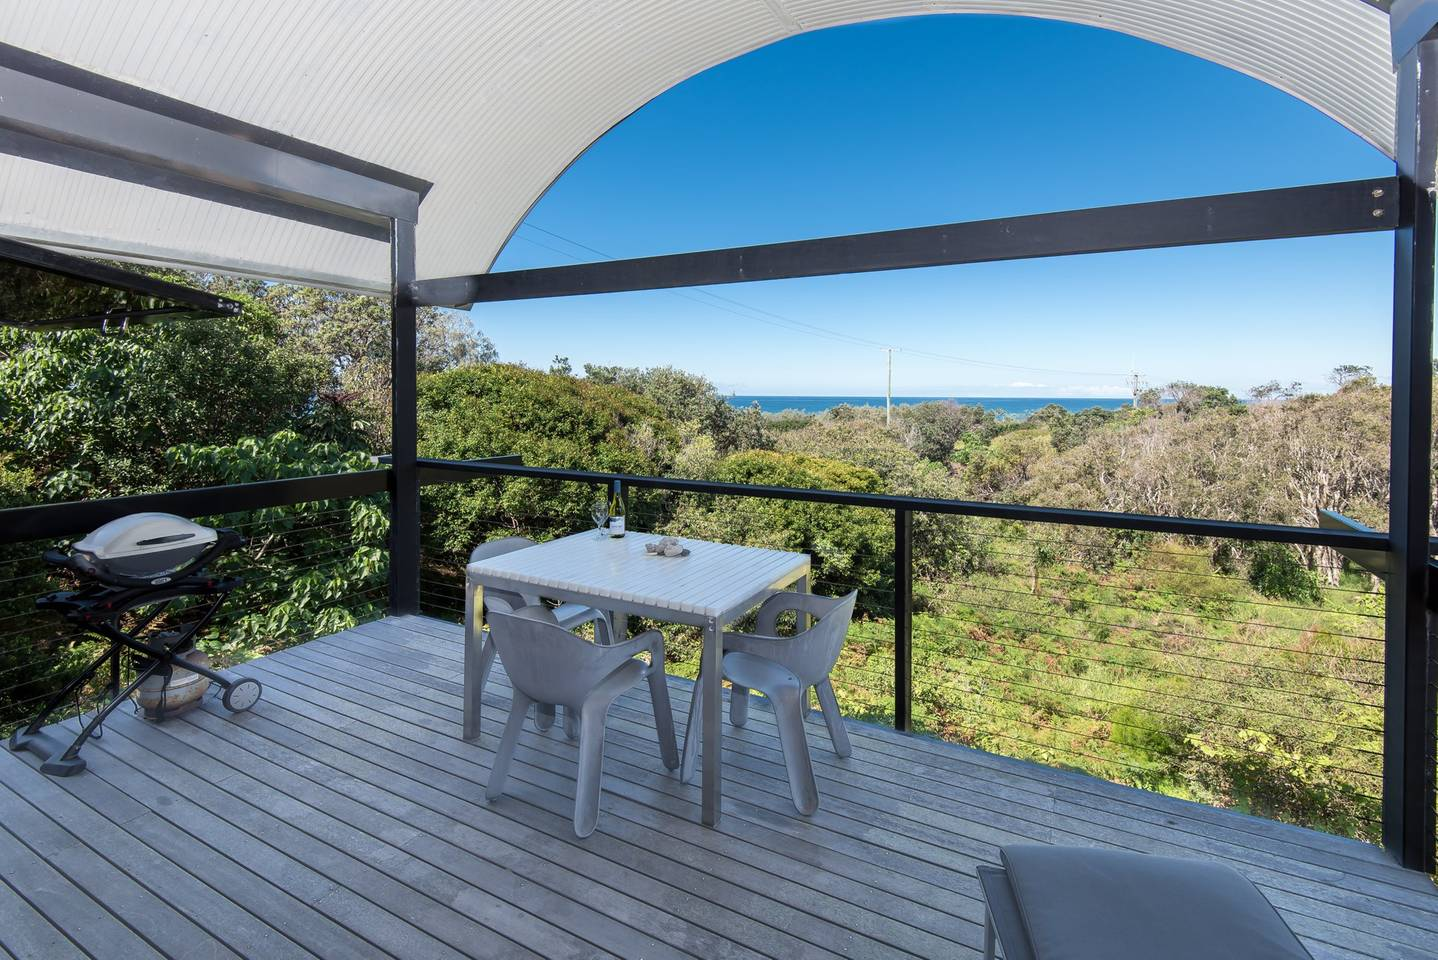 Stunning views of Castaways Beach, Noosa from an airbnb property